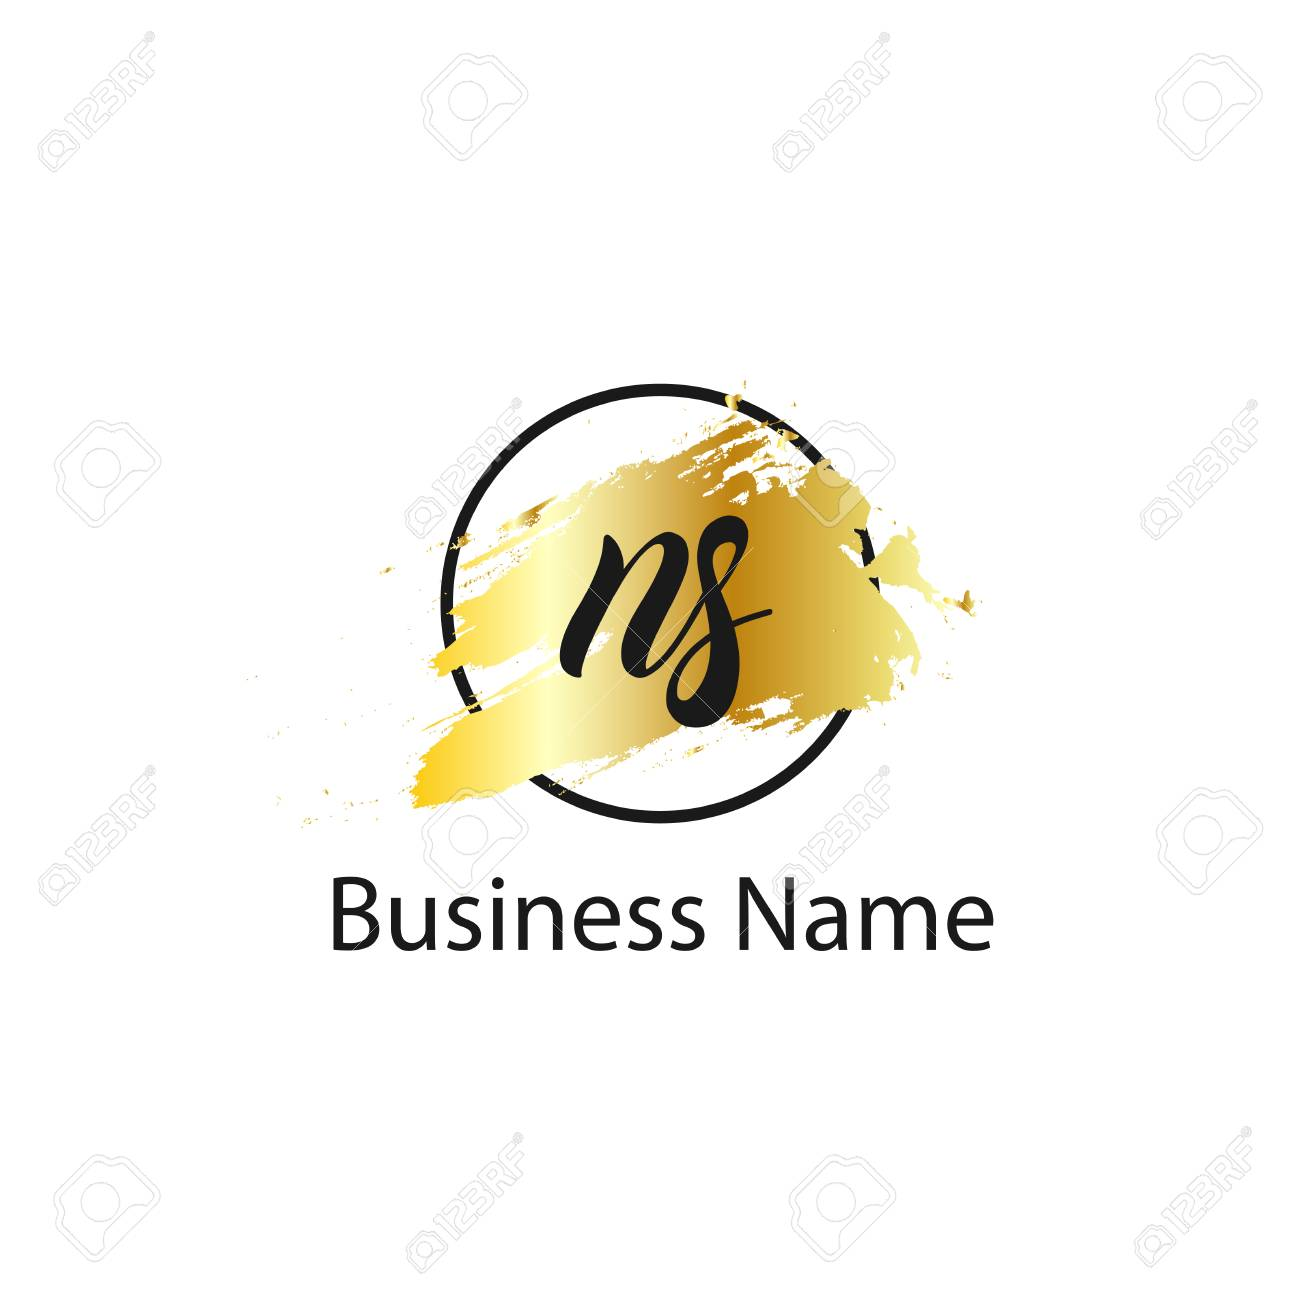 Initial Letter Ns Logo Template Design Royalty Free Cliparts Vectors And Stock Illustration Image 109605625 All enquiries to this page. initial letter ns logo template design